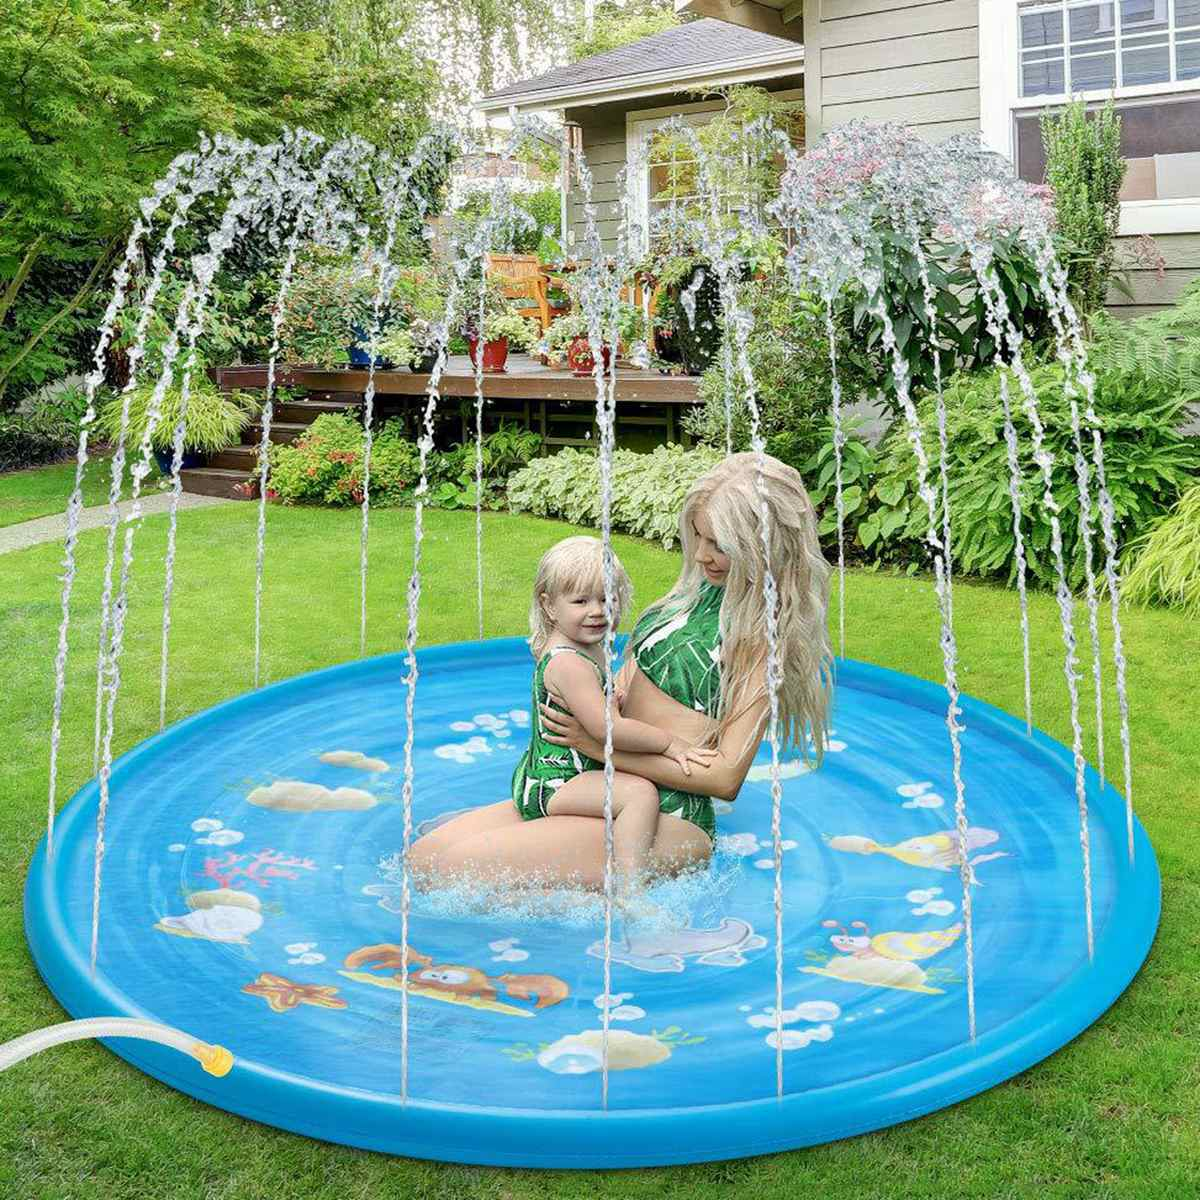 Kids Inflatable Round Water Splash Play Pool 100cm Playing Sprinkler Mat Yard Outdoor Fun Multicolour PVC Swimming Pools